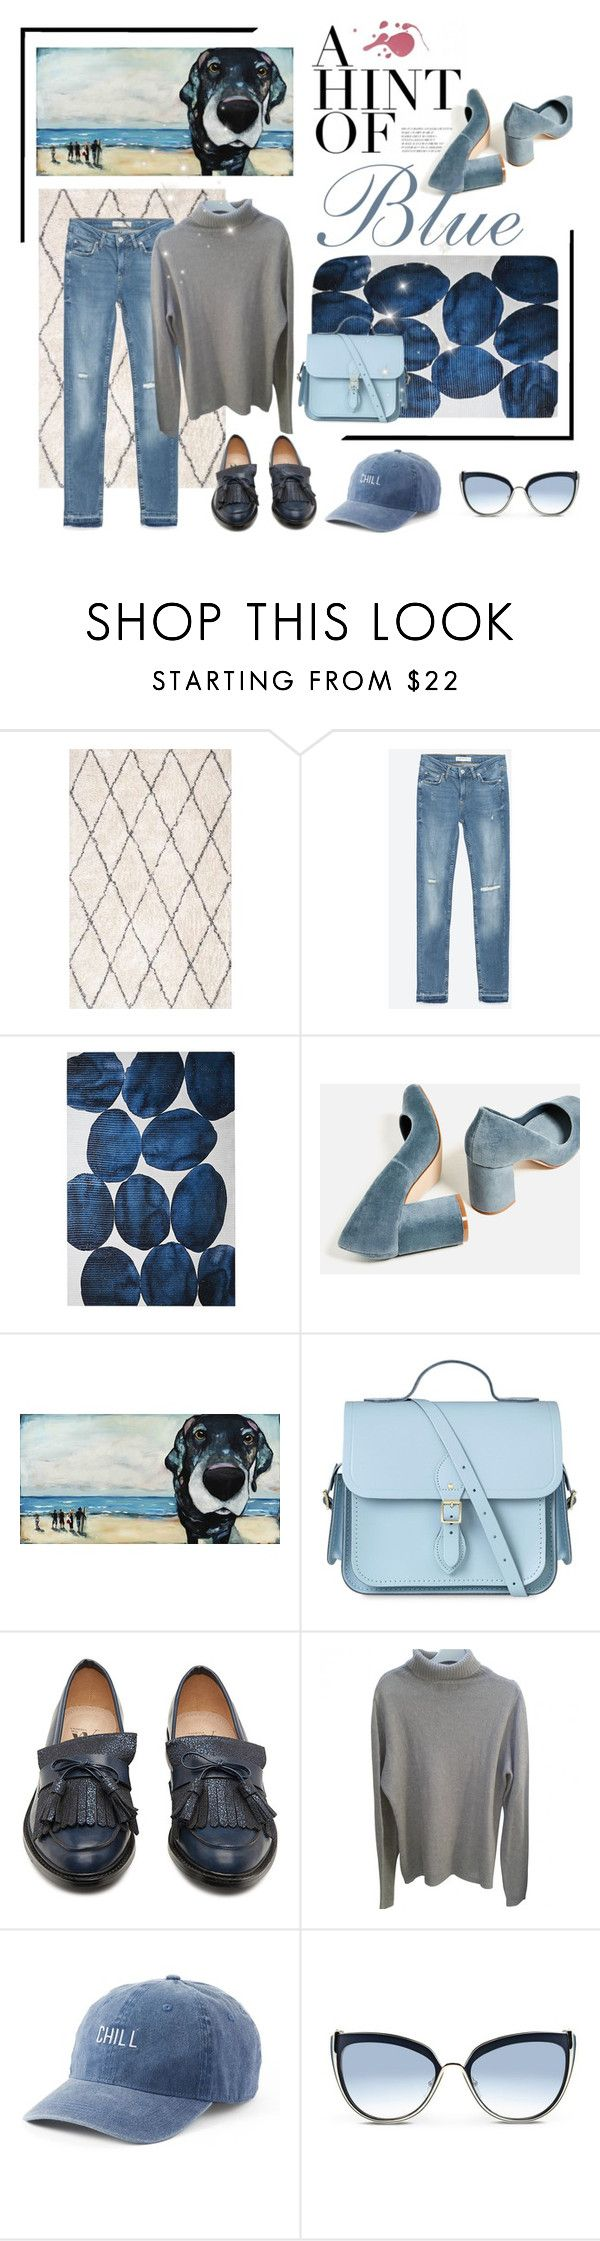 """Hint of Blue"" by ladeesse on Polyvore featuring Zara, The Cambridge Satchel Company, Vanessa Wu, SO et Karl Lagerfeld"